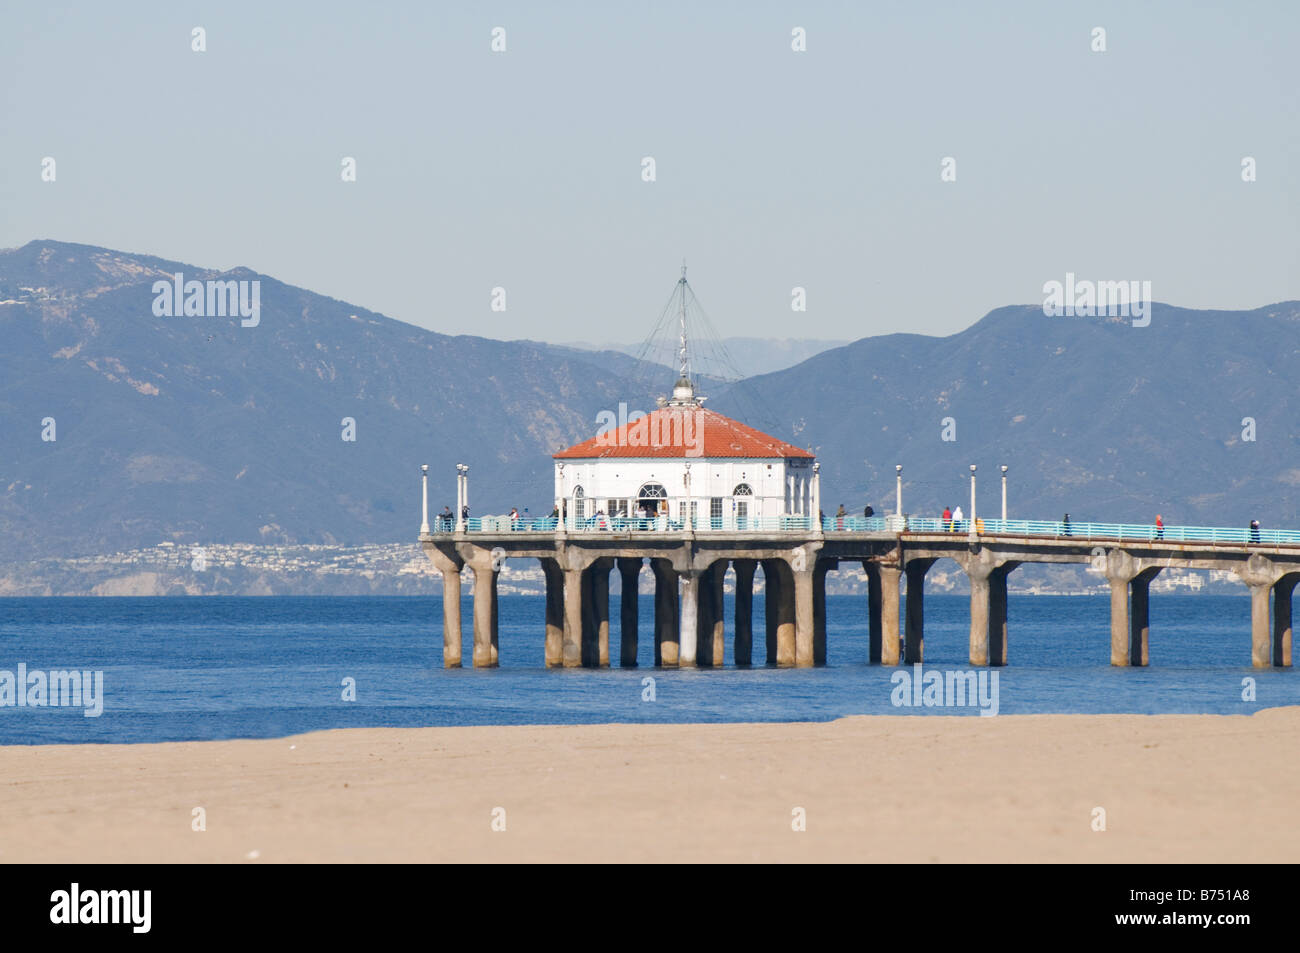 Manhattan Beach pier Santa Monica bay Los Angeles California - Stock Image